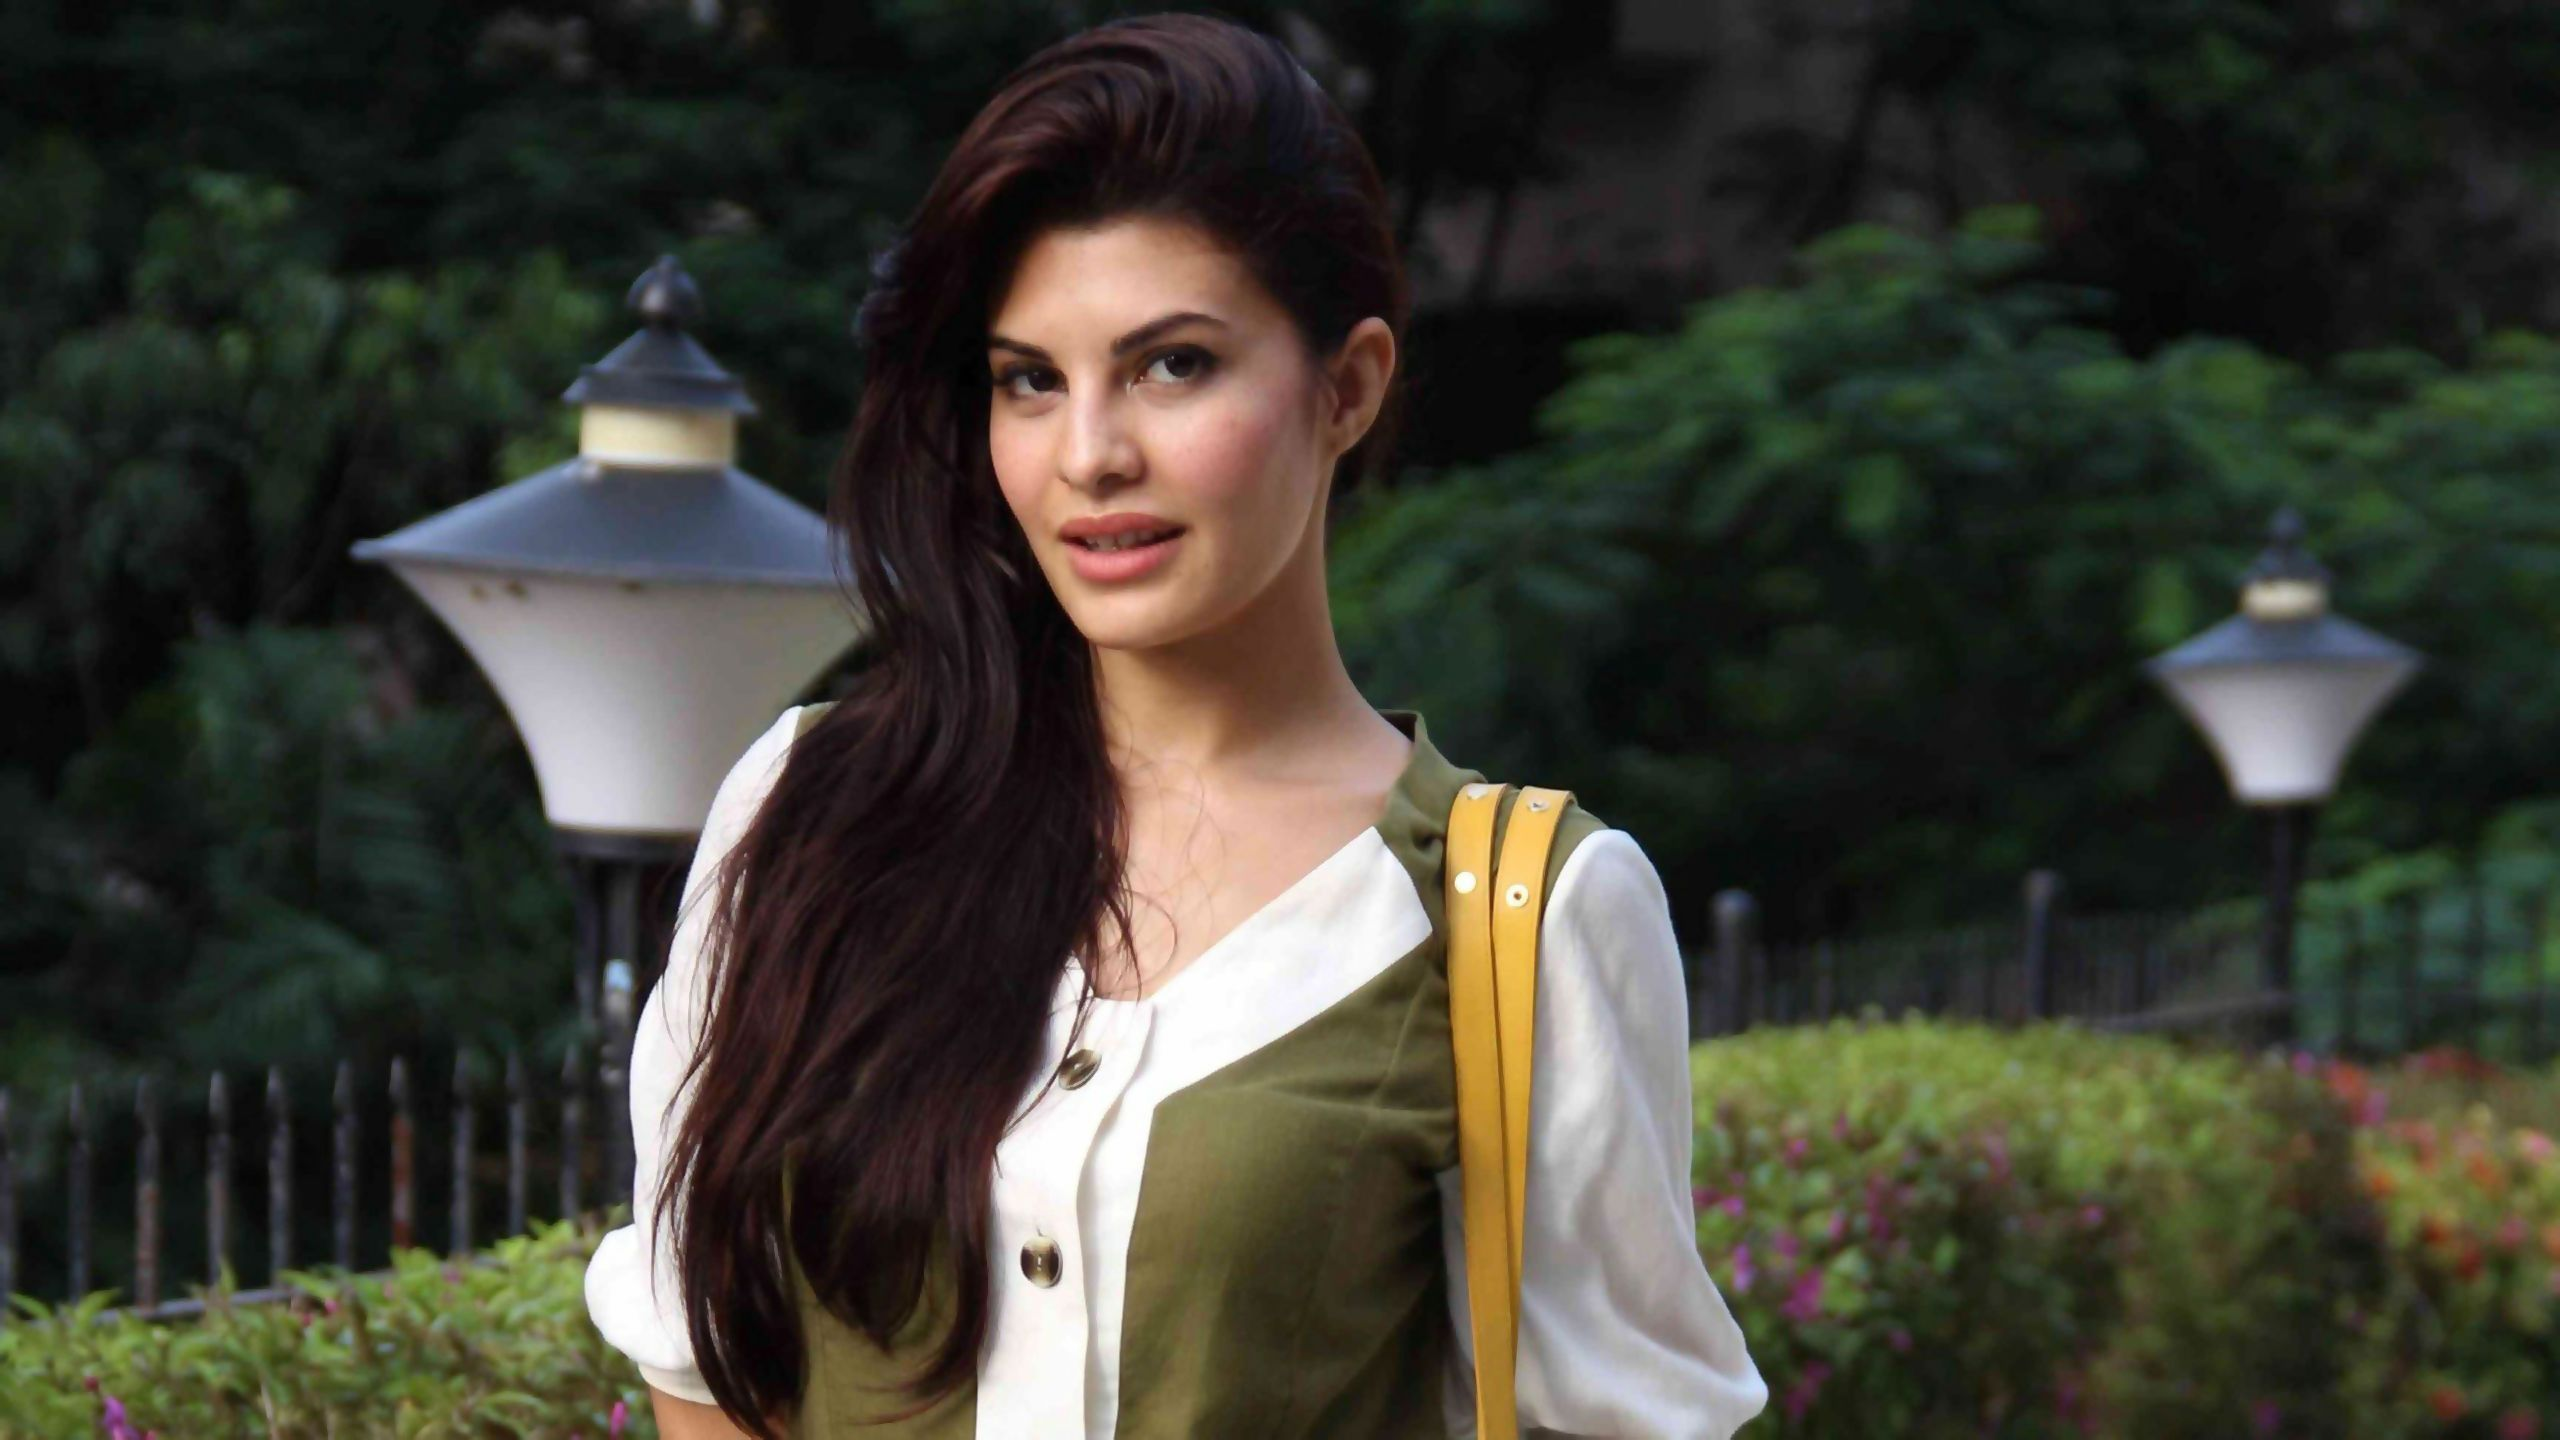 jacqueline fernandez hd images get top quality jacqueline jacqueline fernandez hd images get top quality jacqueline fernandez hd images for your desktop